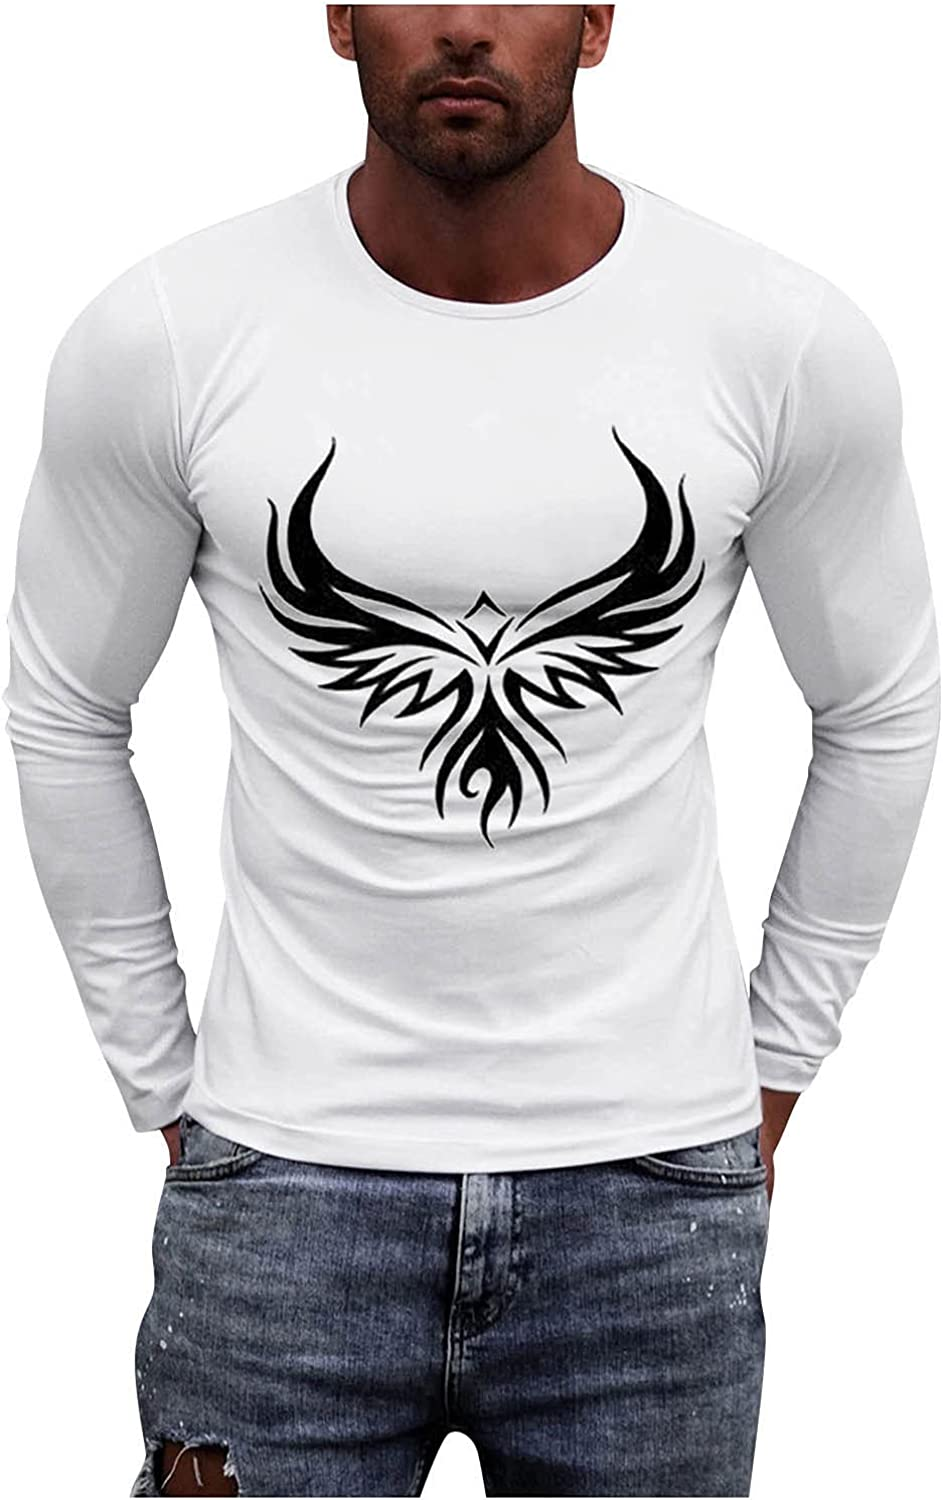 UBST Soldier Long Sleeve T-shirts for Mens, Fall Faith Jesus Cross Graphic Print Workout Athletics Crewneck Tee Tops